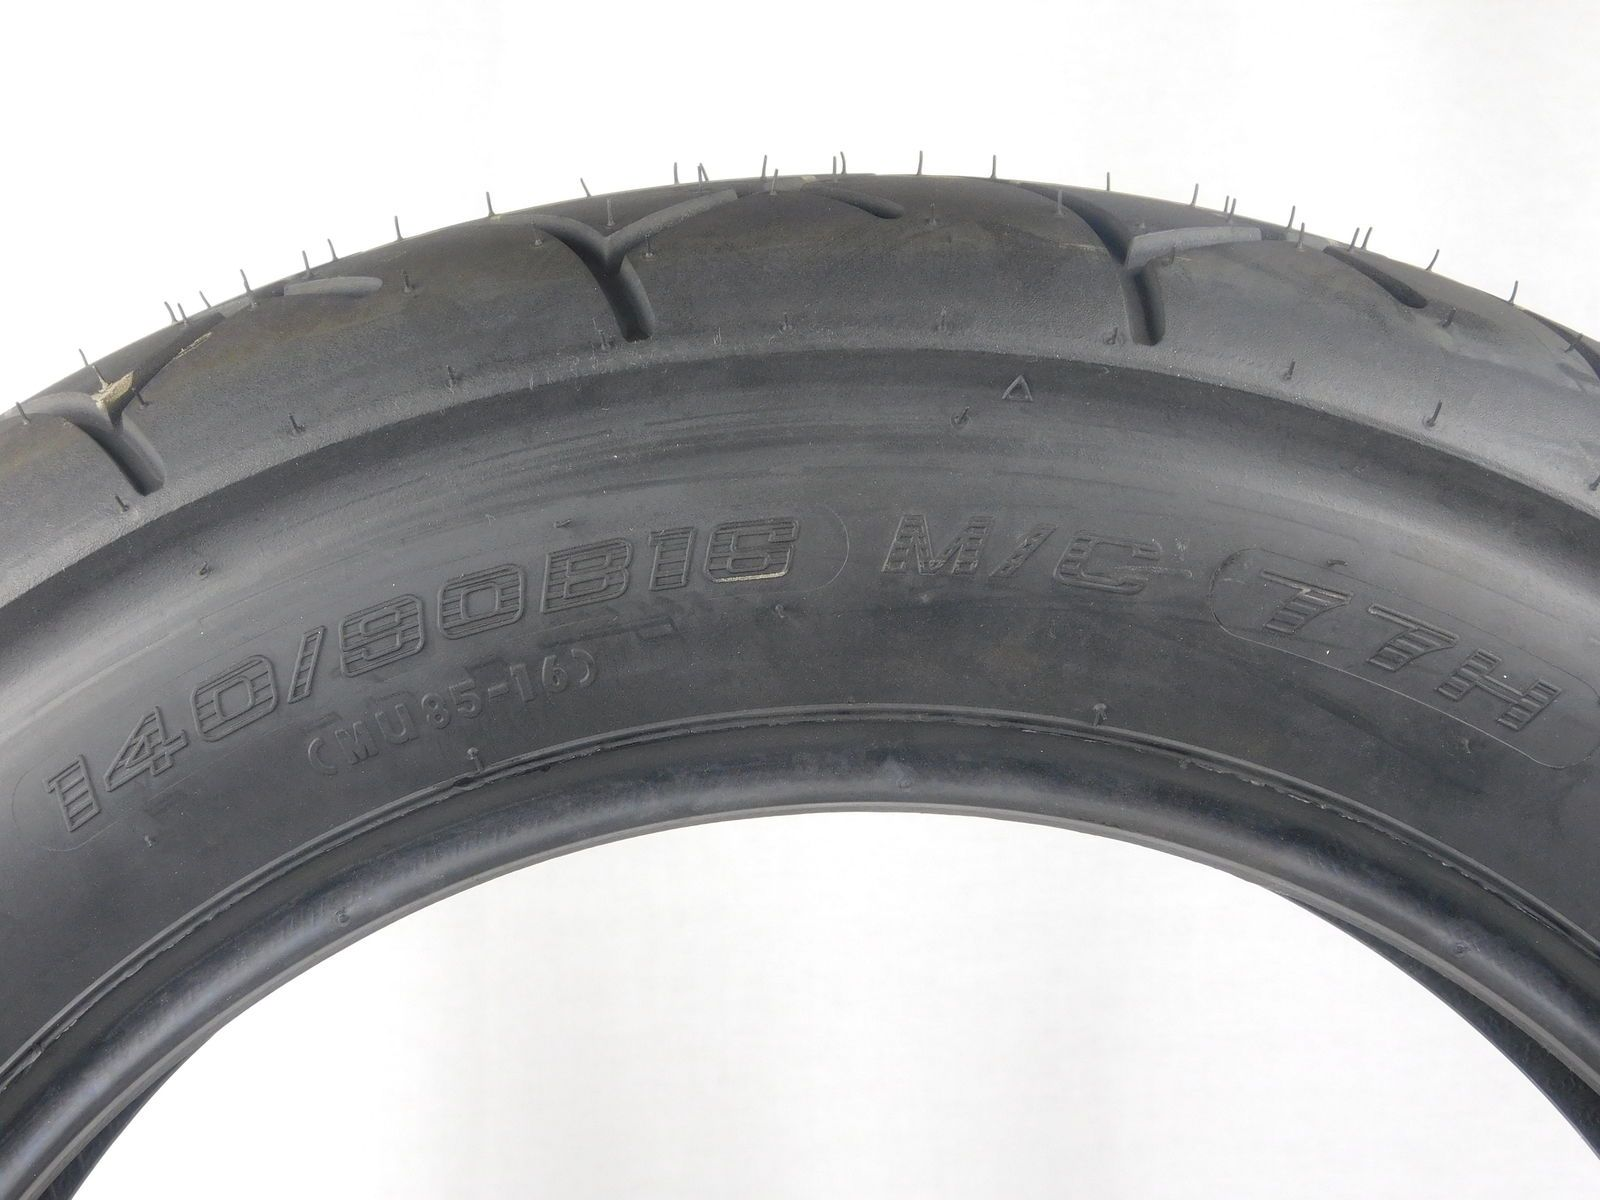 Full-Bore-120-70-21-Front-140-90-16-Tour-King-Cruiser-Motorcycle-Tires-image-5